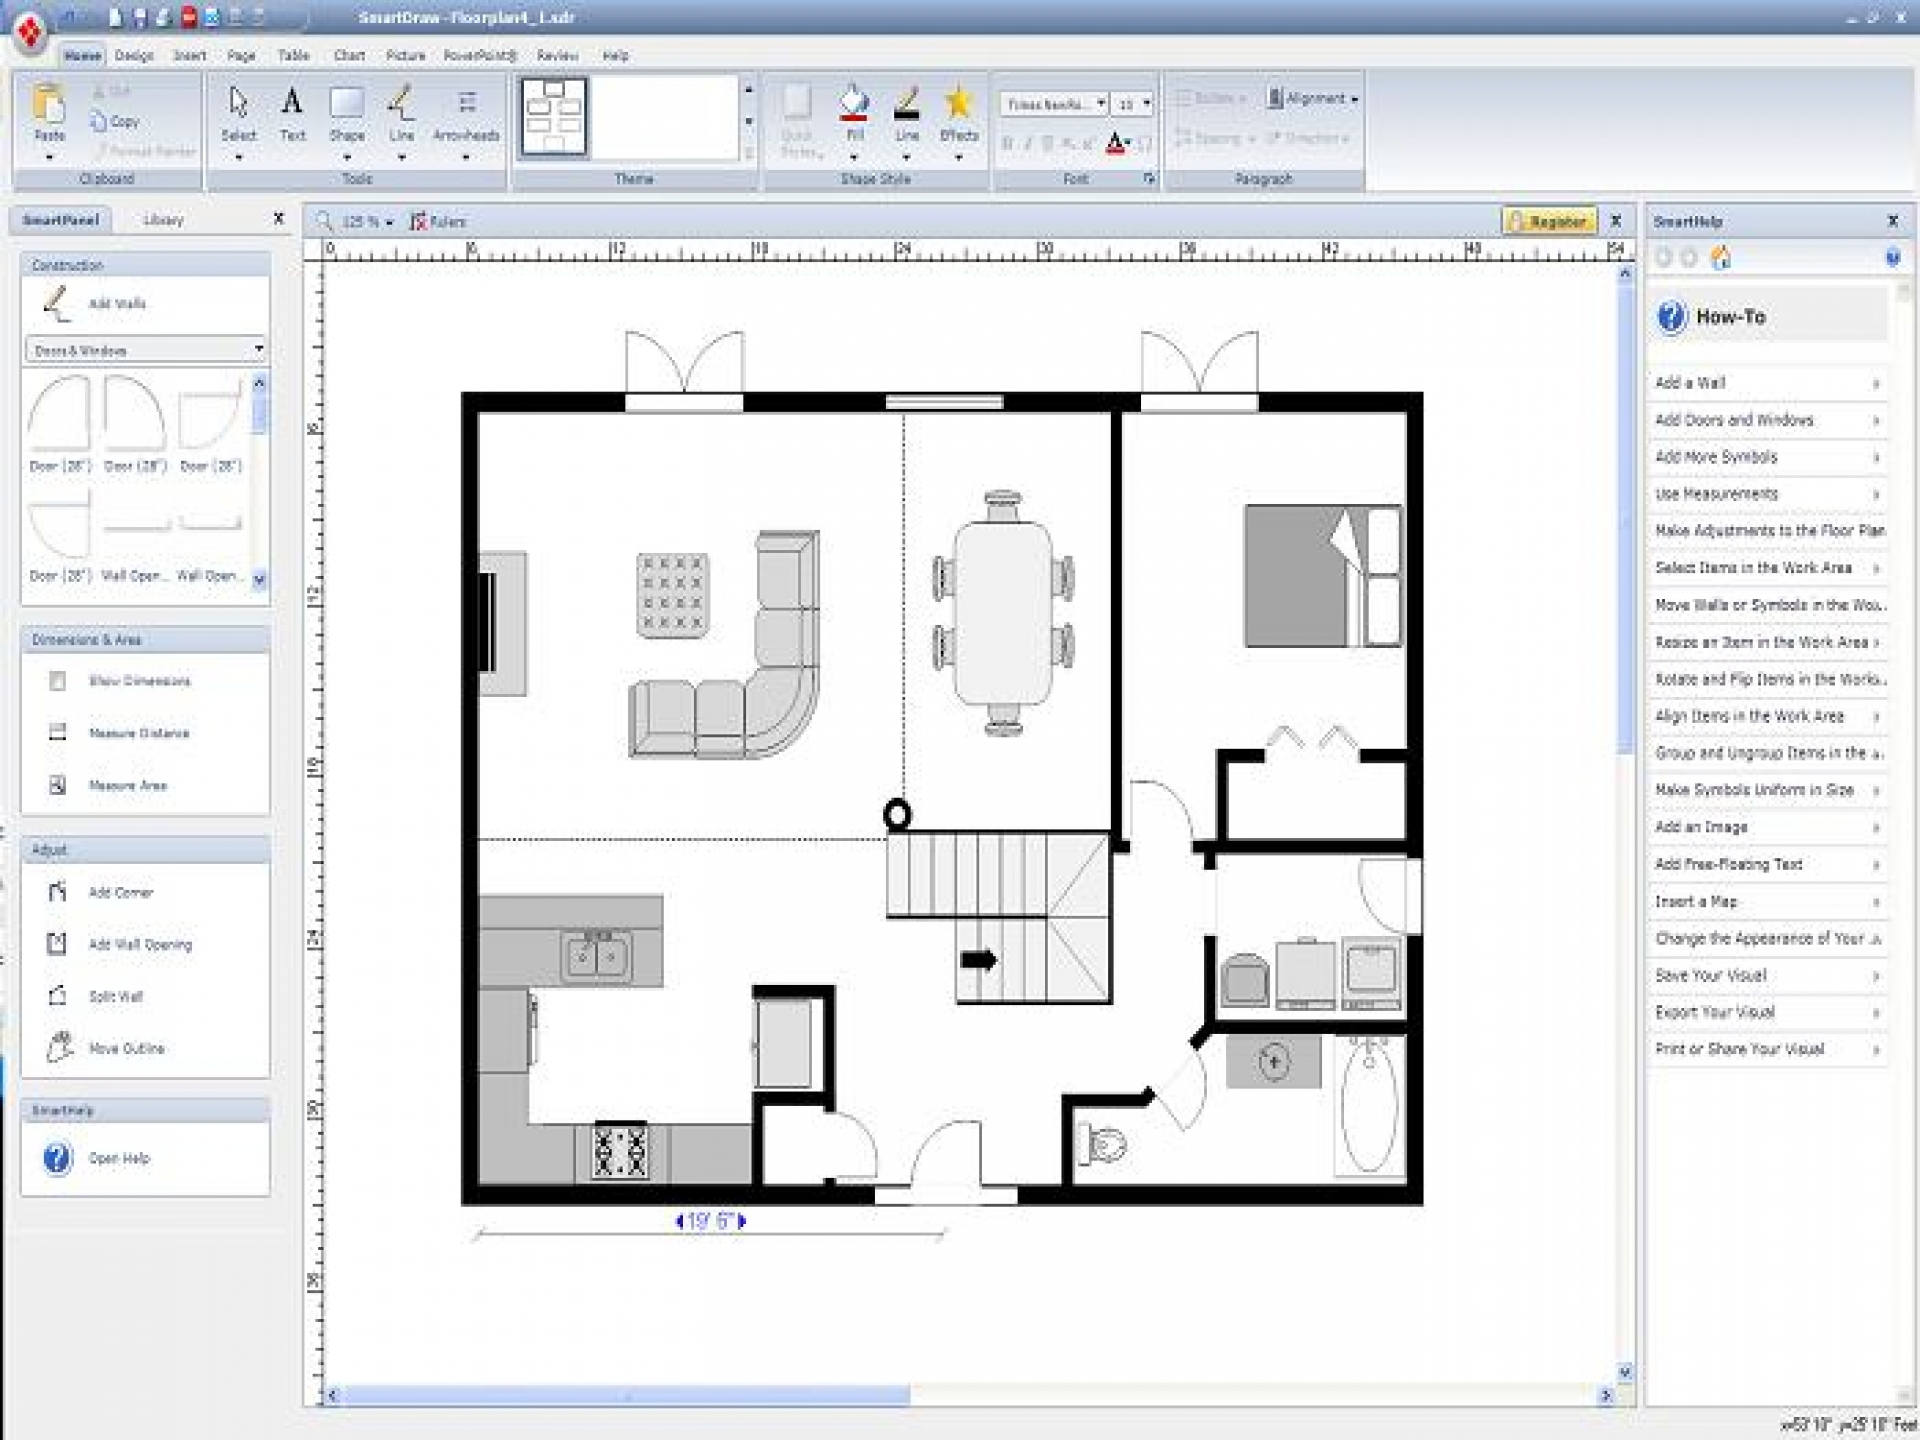 free floor plans online the best free plan drawing images download from 2473 free drawings of plan at getdrawings 5033